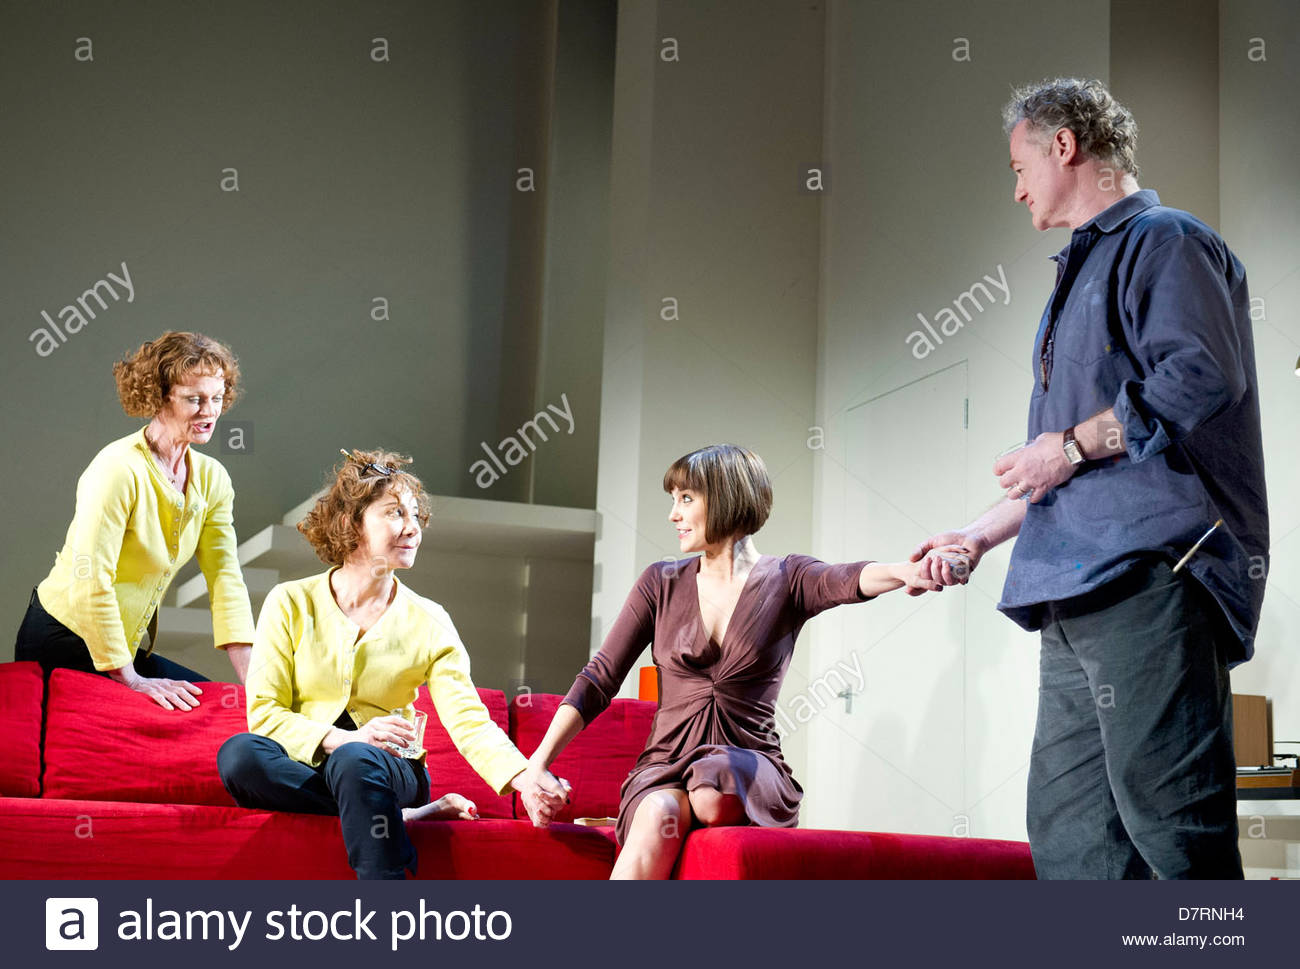 Passion Play by Peter Nichols, directed by David Leveaux. With Samantha Bond as Nell, Zoe Wanamaker as Eleanor,Annabel - Stock Image